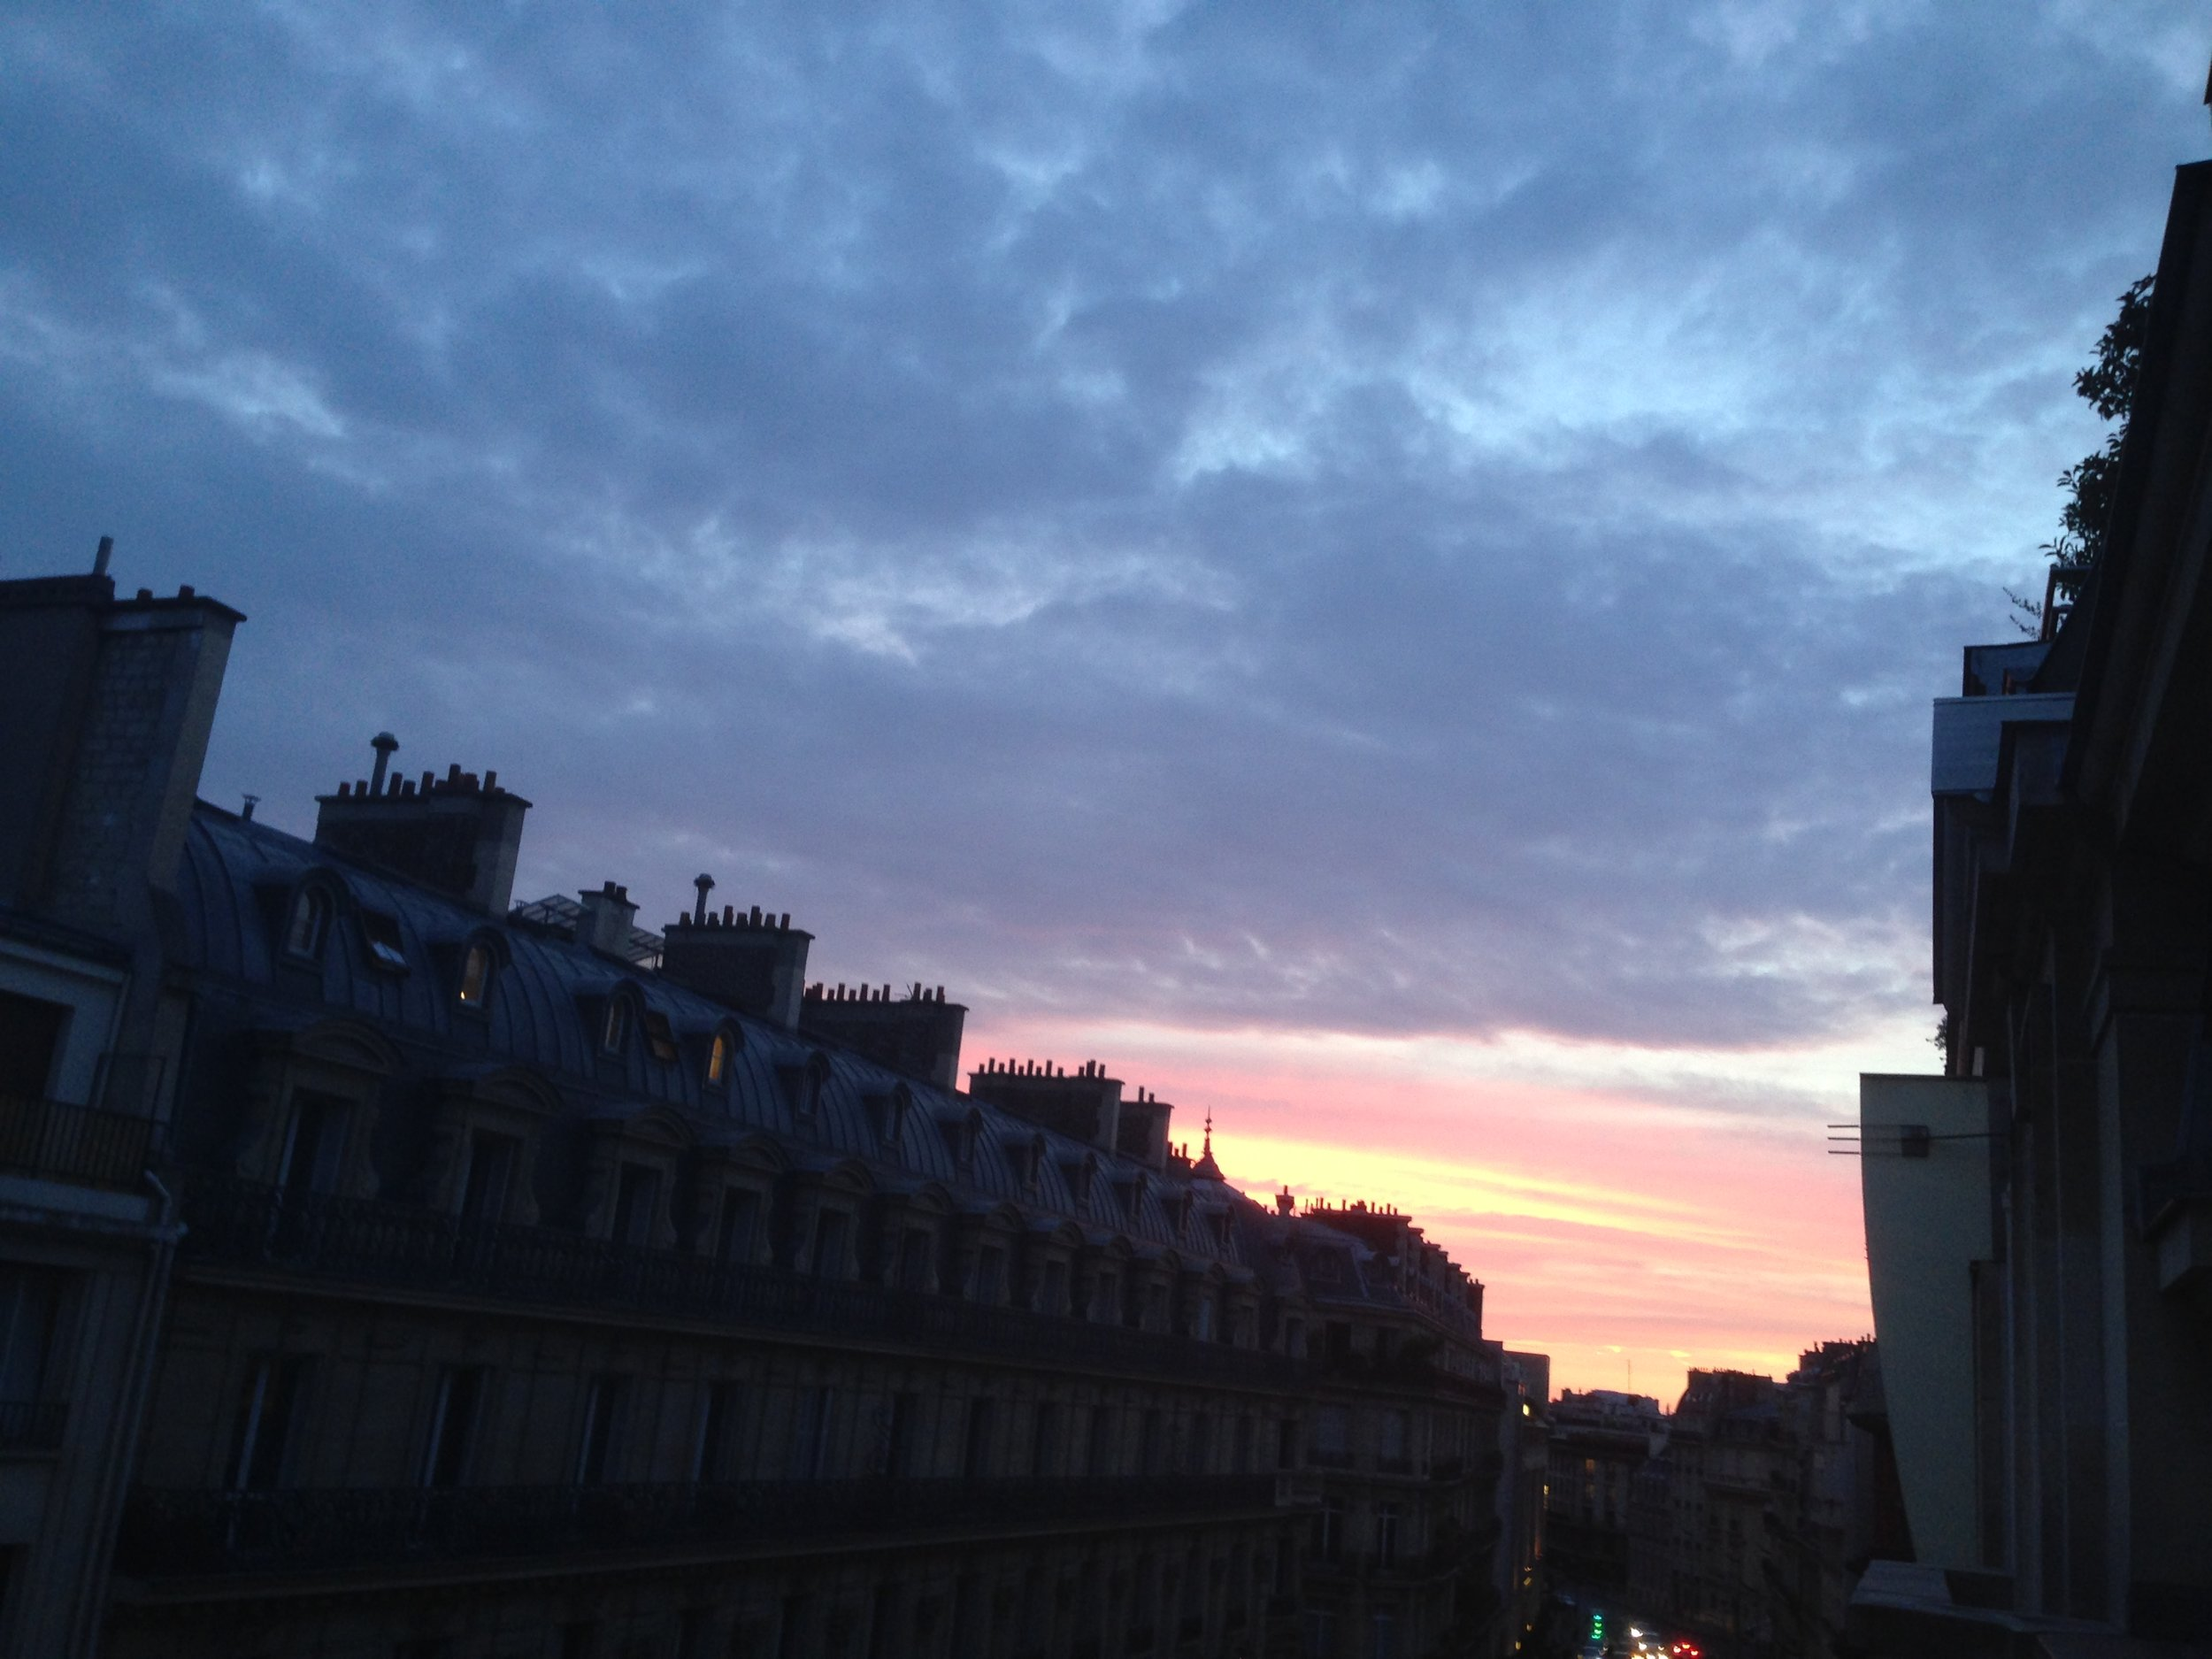 Sunset in Paris.